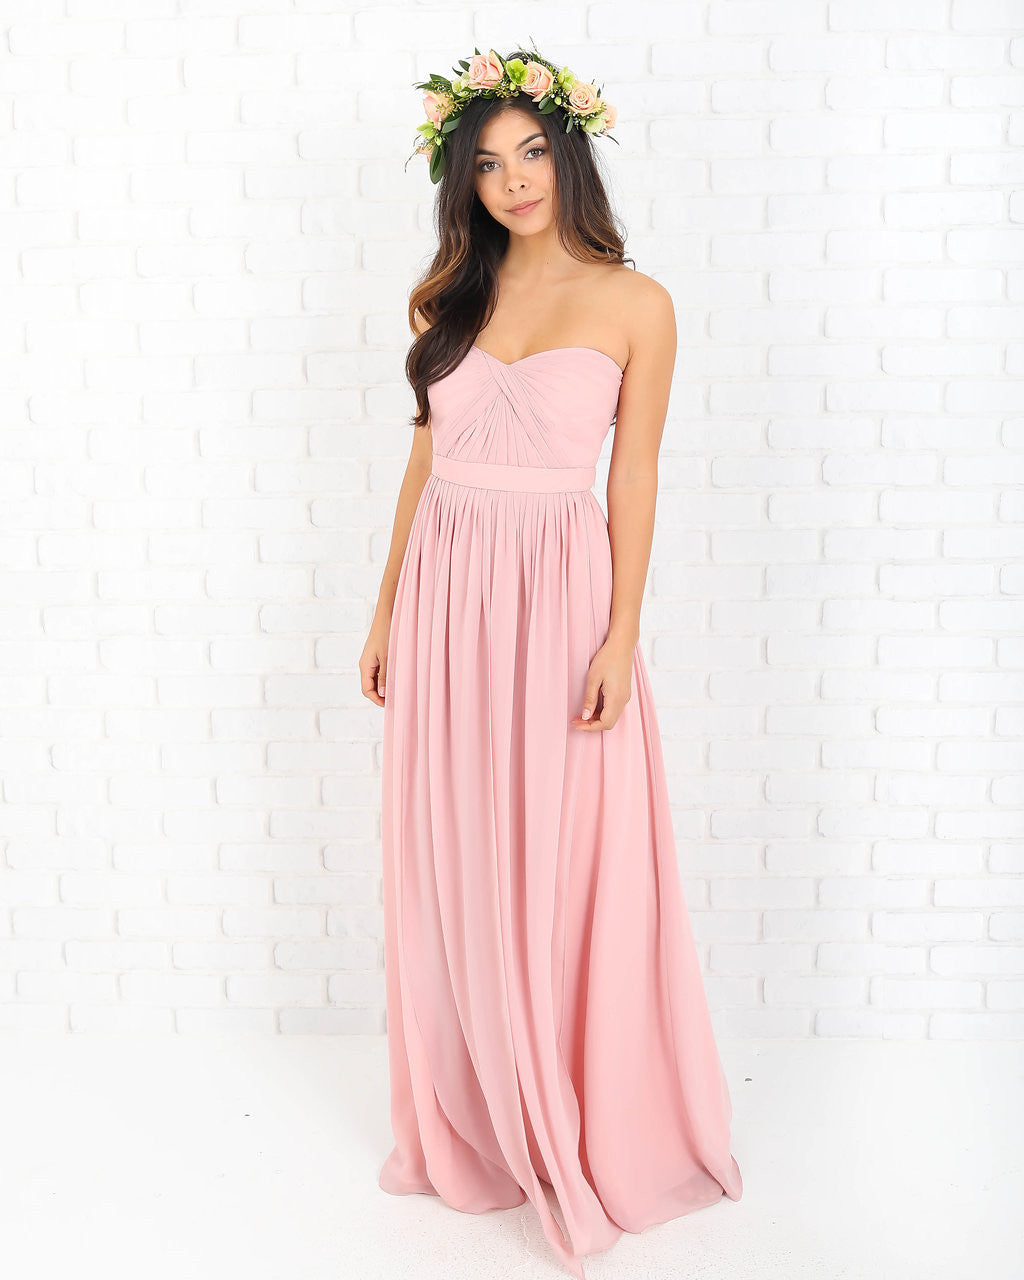 76256fdeea34 Gwena Strapless Maxi Dress - FINAL SALE – VICI